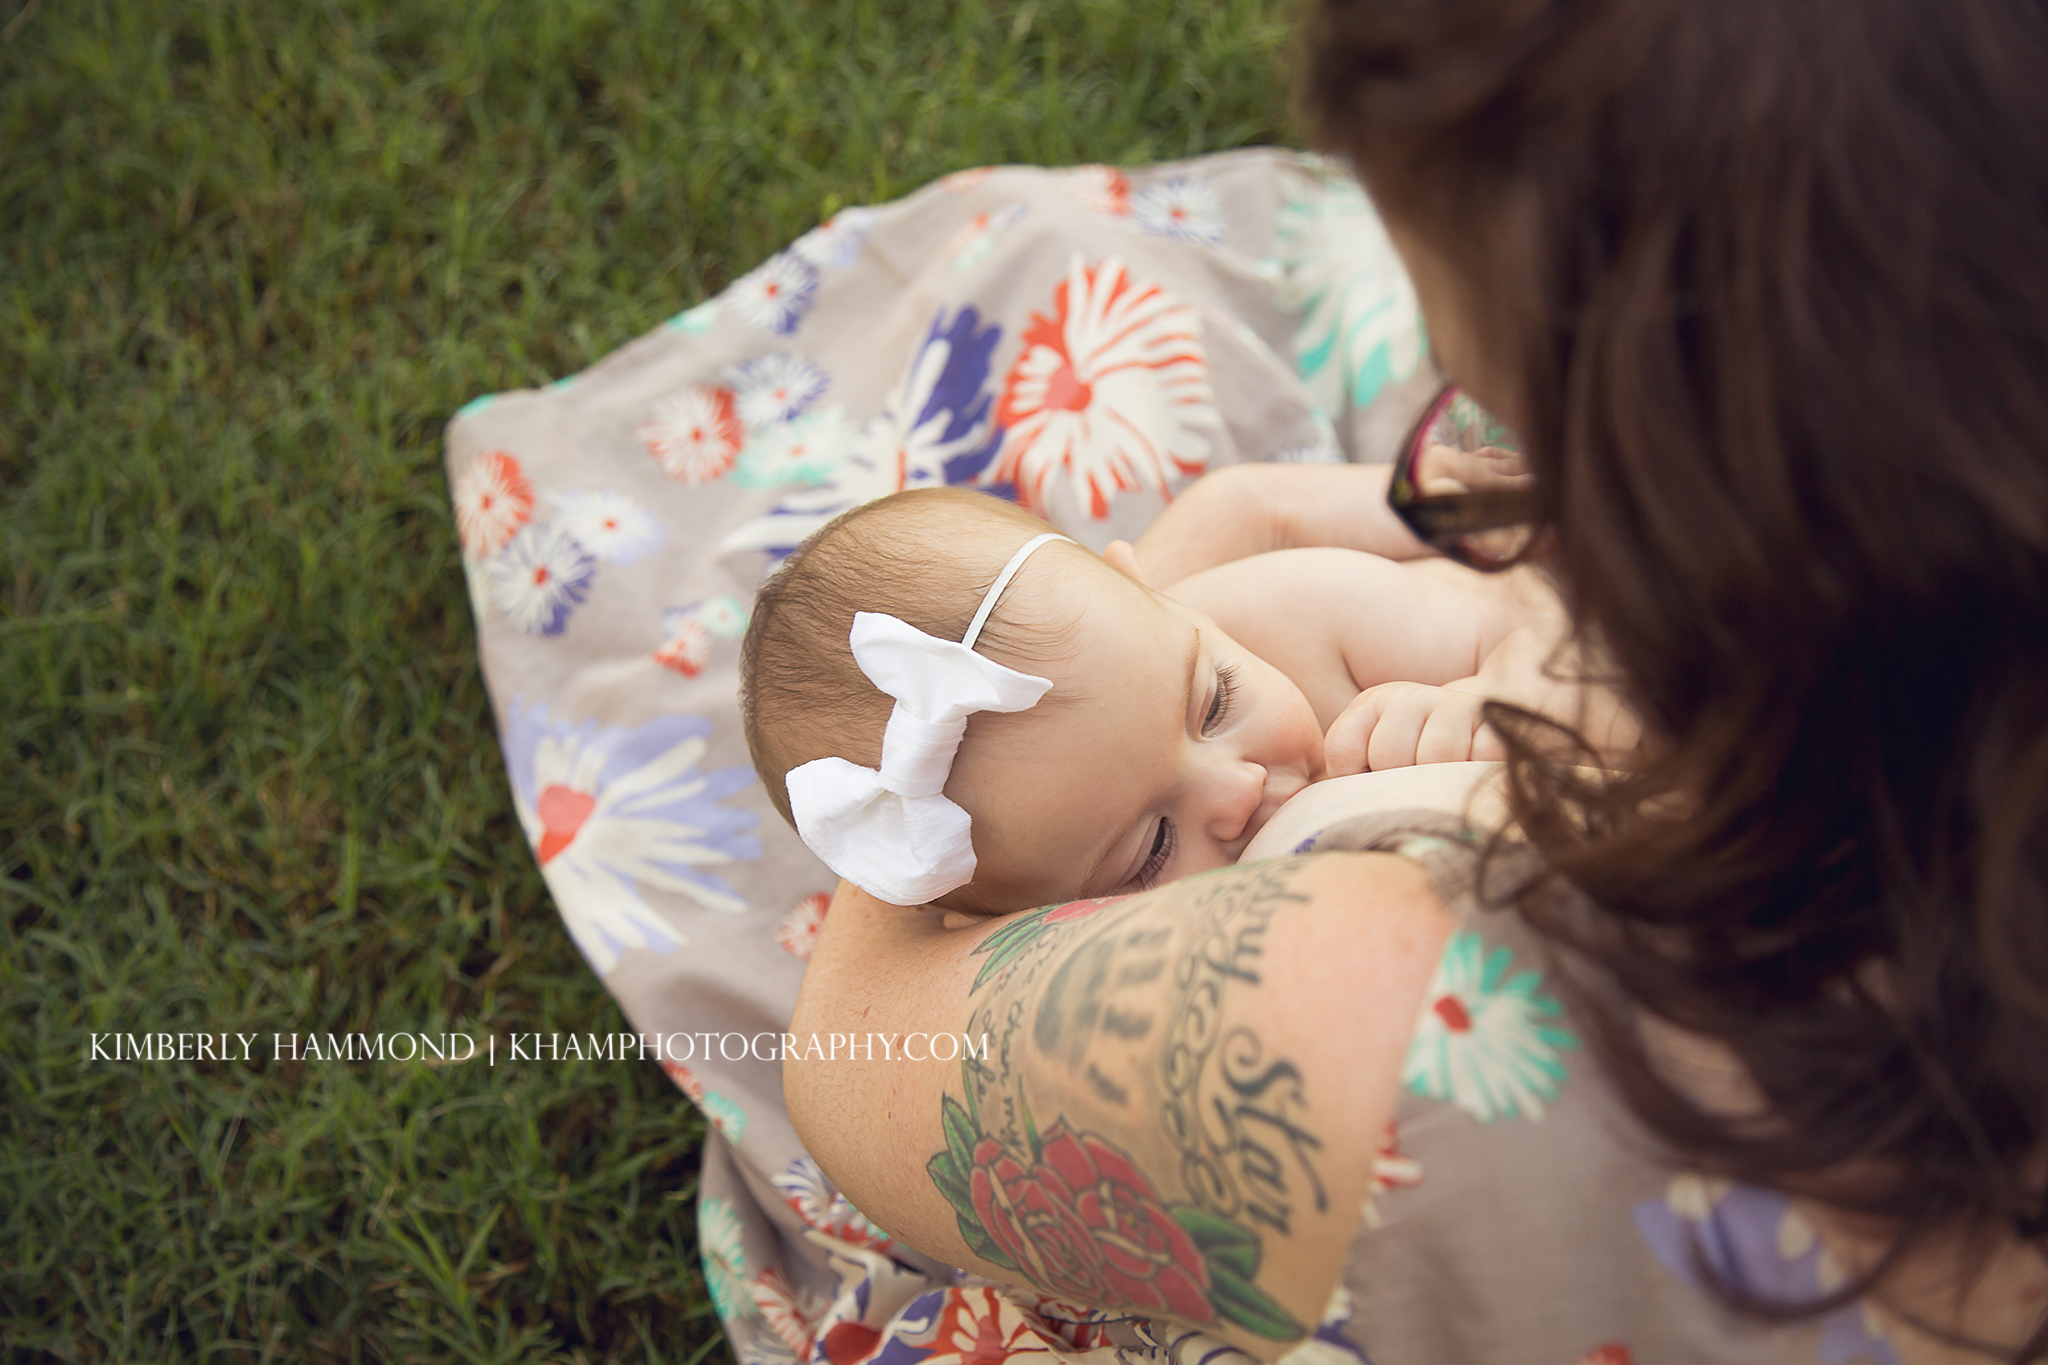 Baby breastfeeds at park in Frisco, TX.